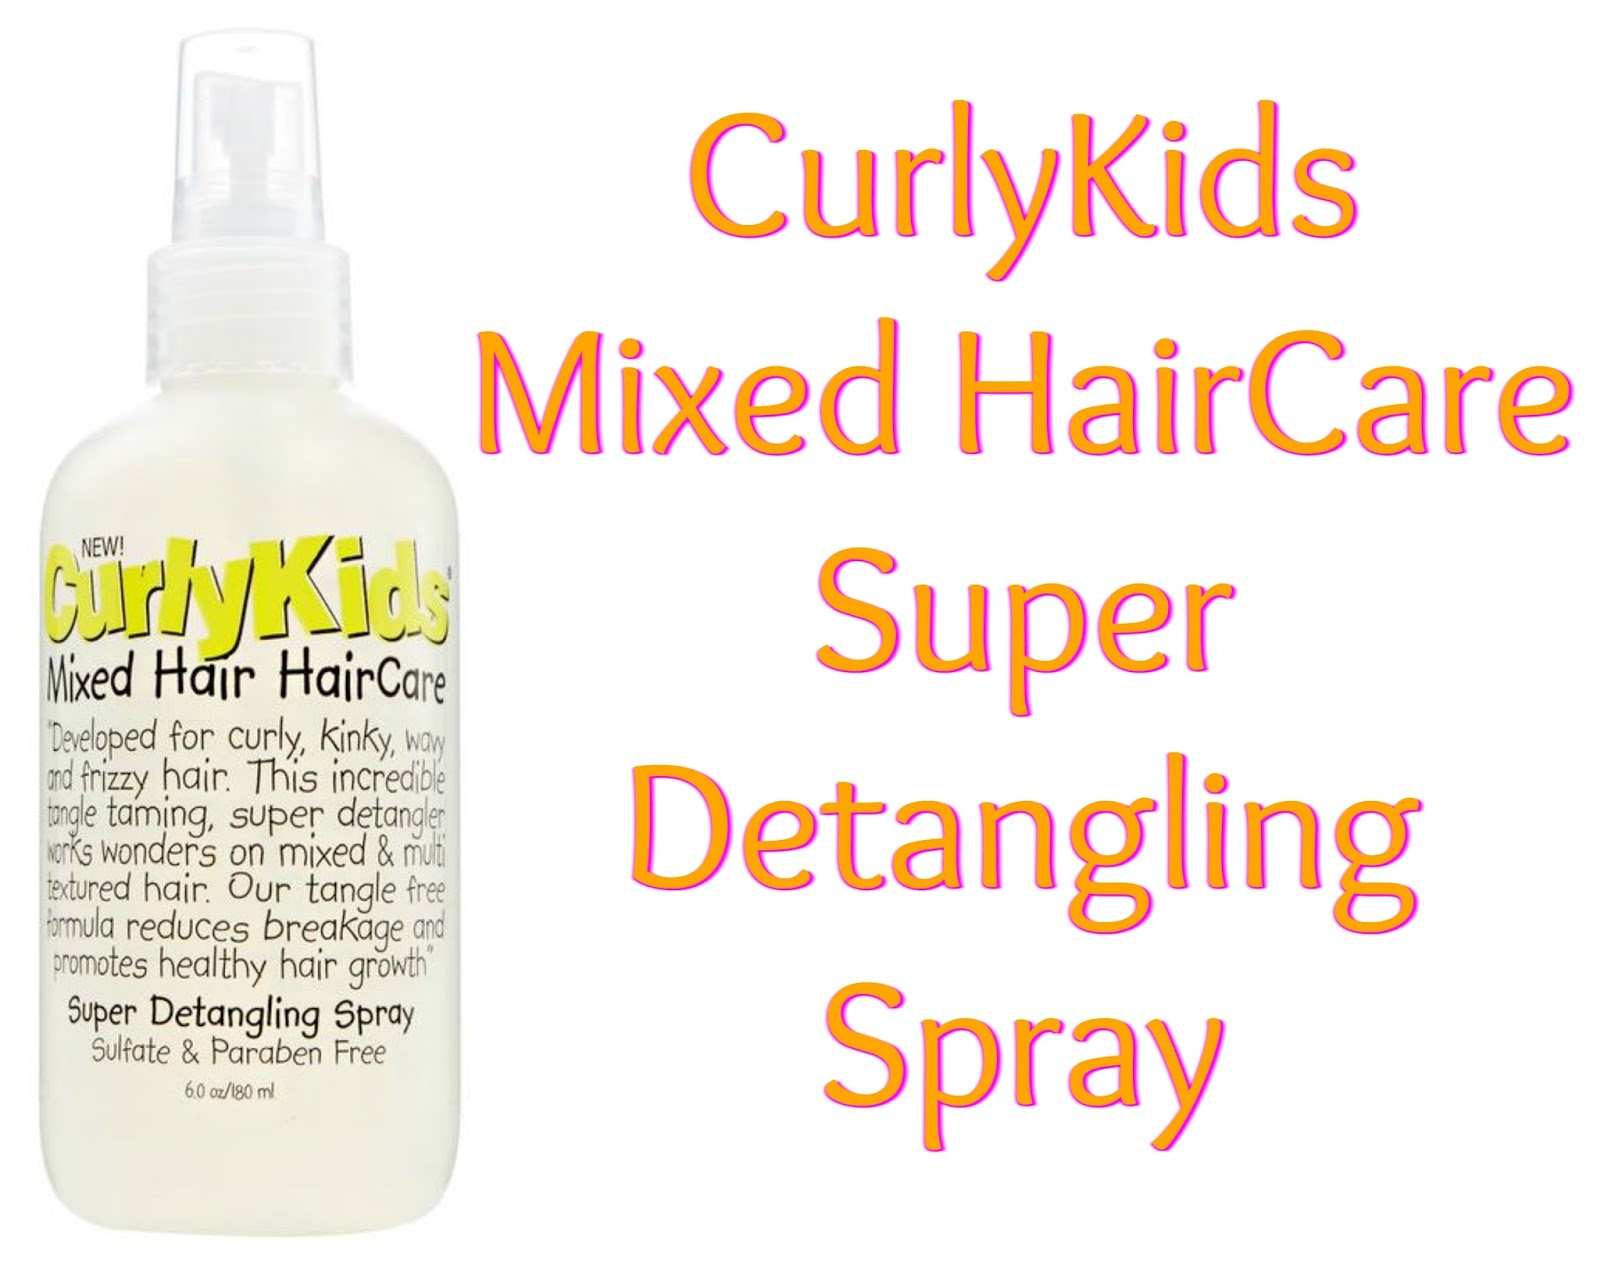 Click here to get CurlyKids Mixed HairCare Super Detangling Spray to quickly tame those tangles.